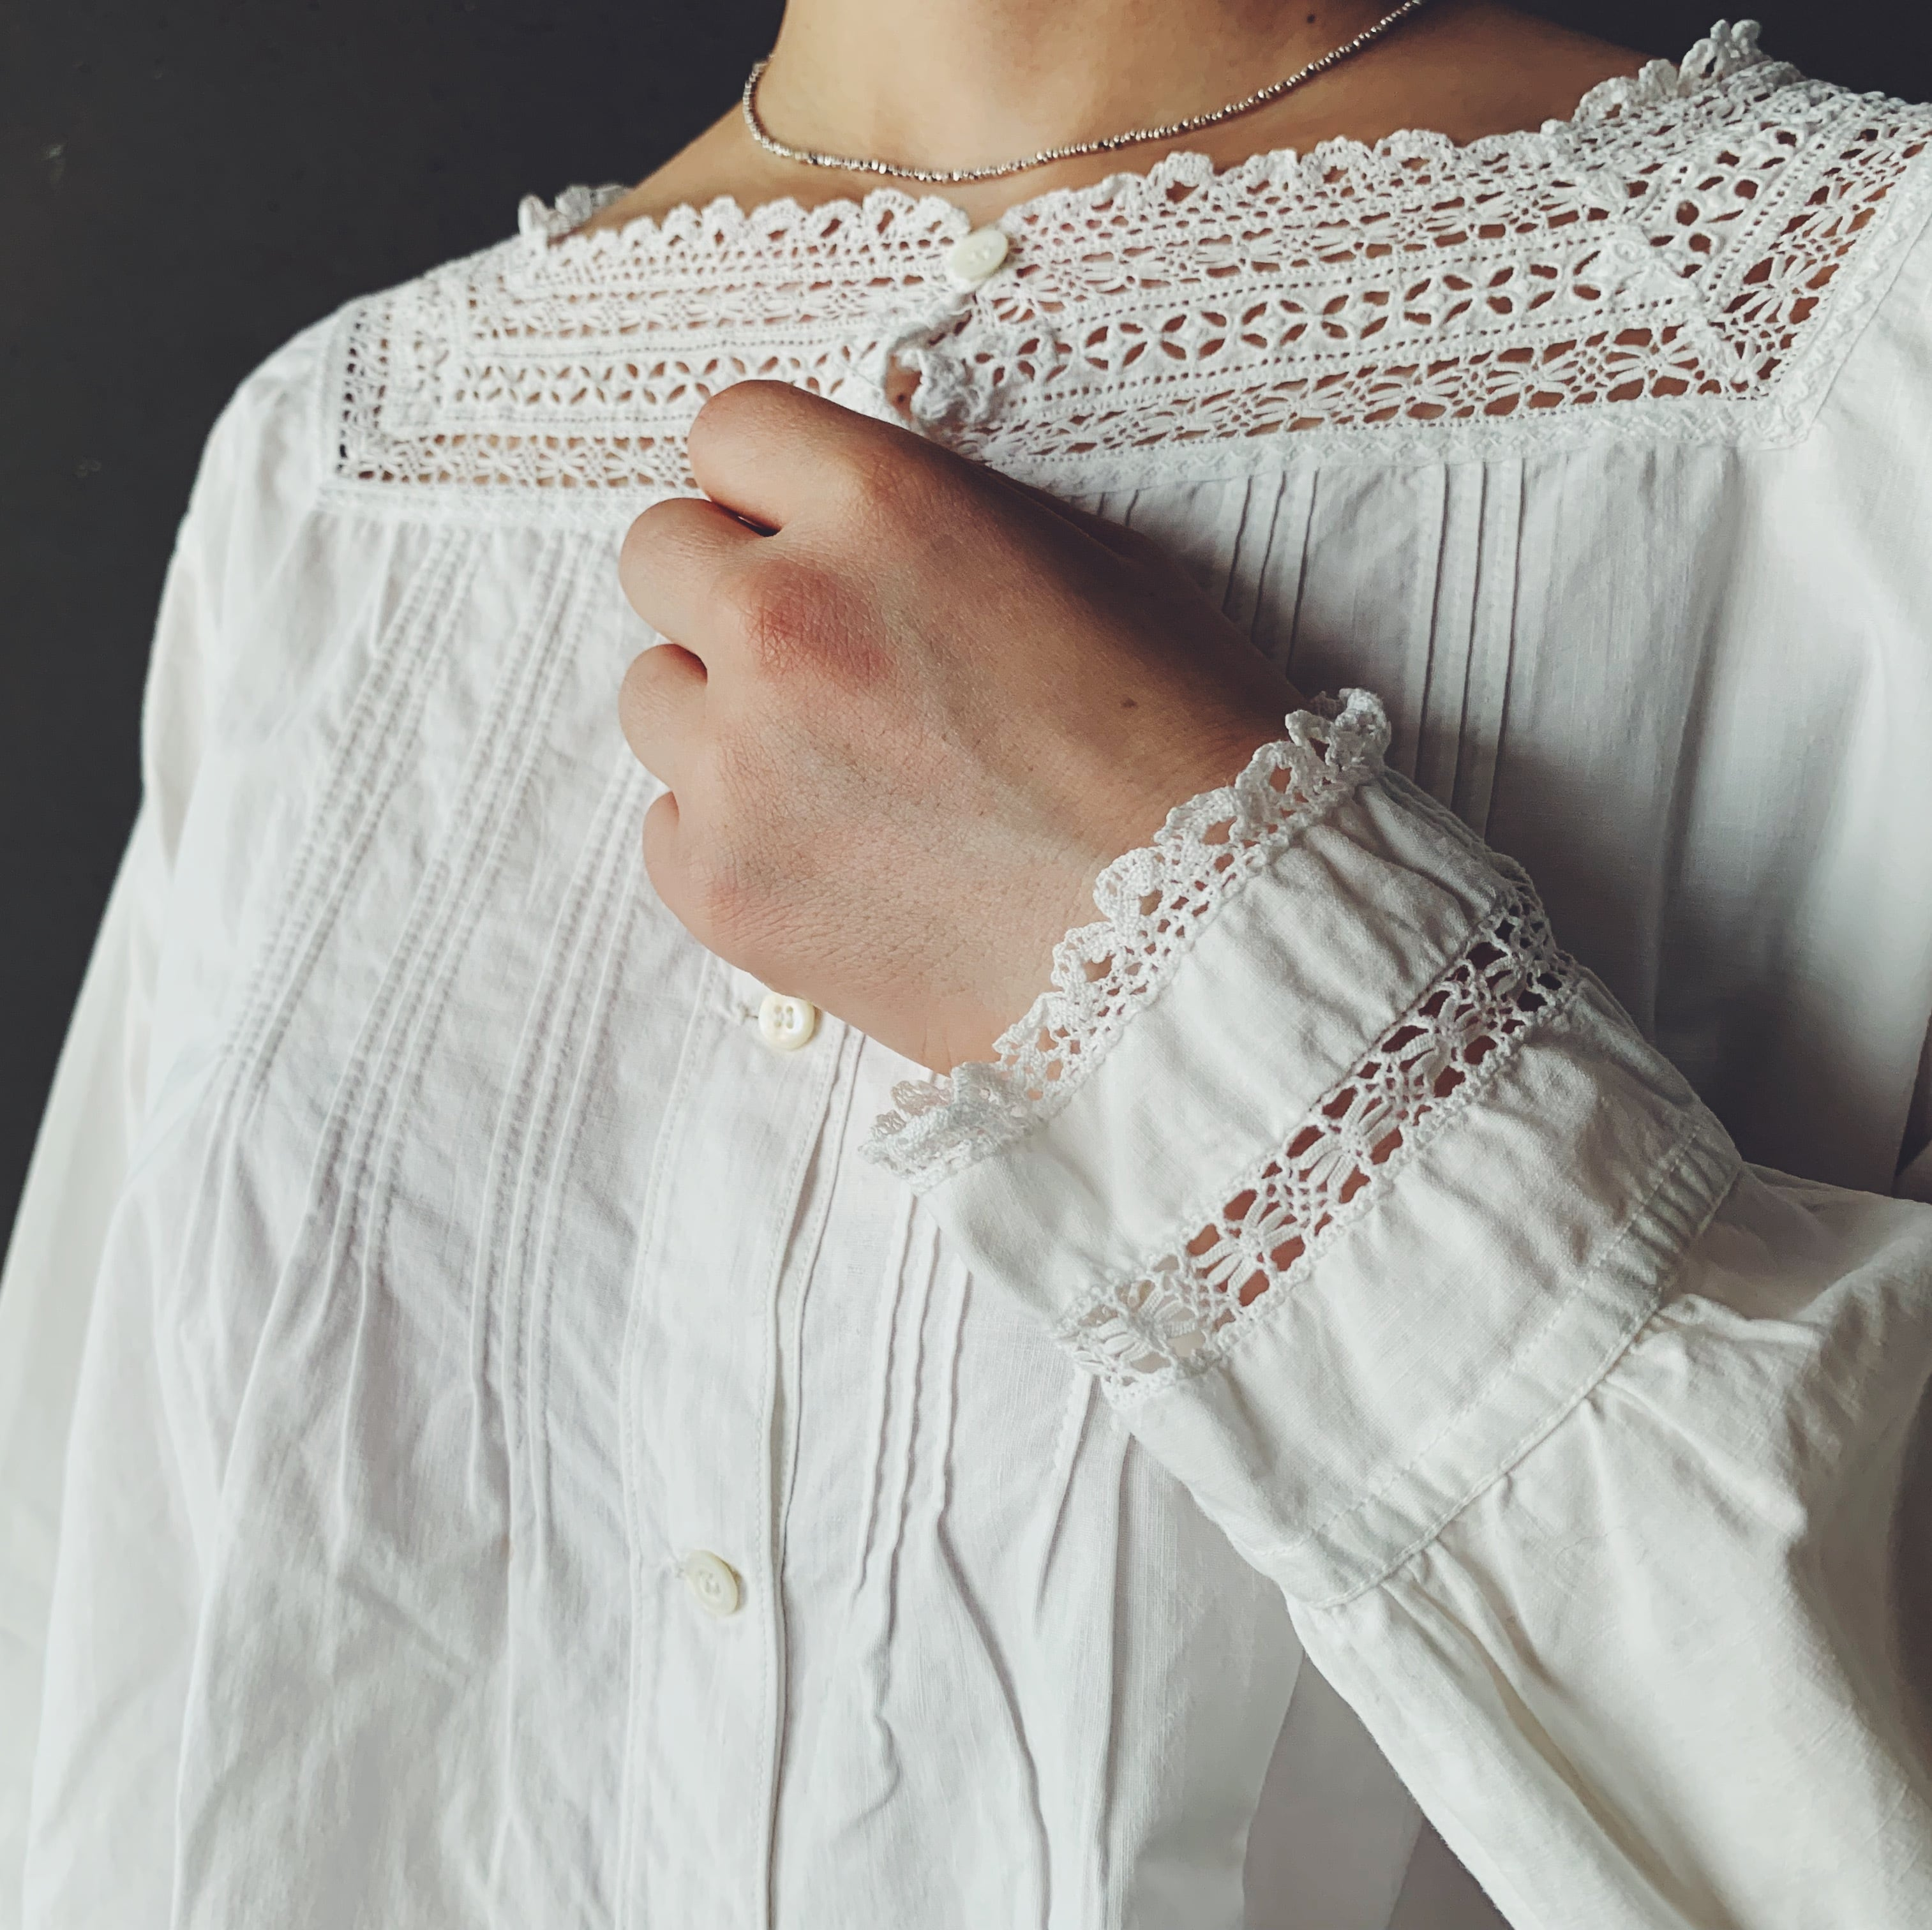 French blouse (01-21-32-3)